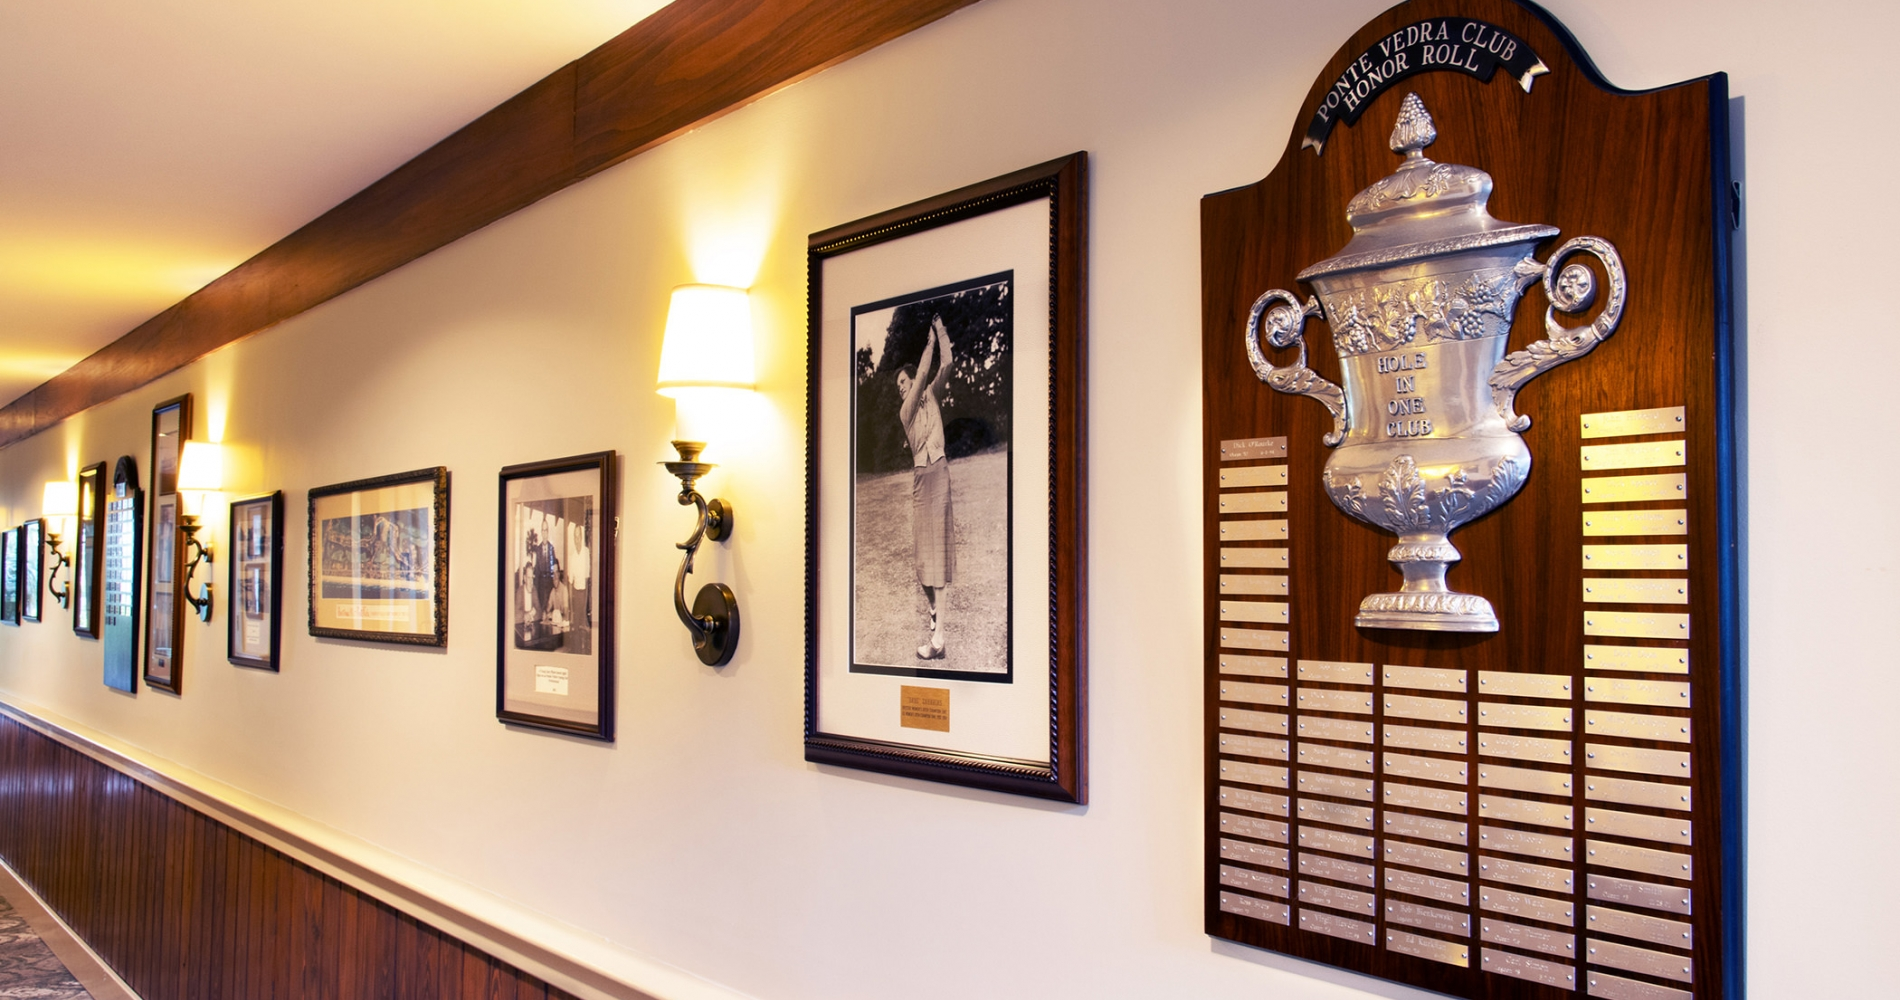 Historic golf photos and plaques on display in the club house hallway